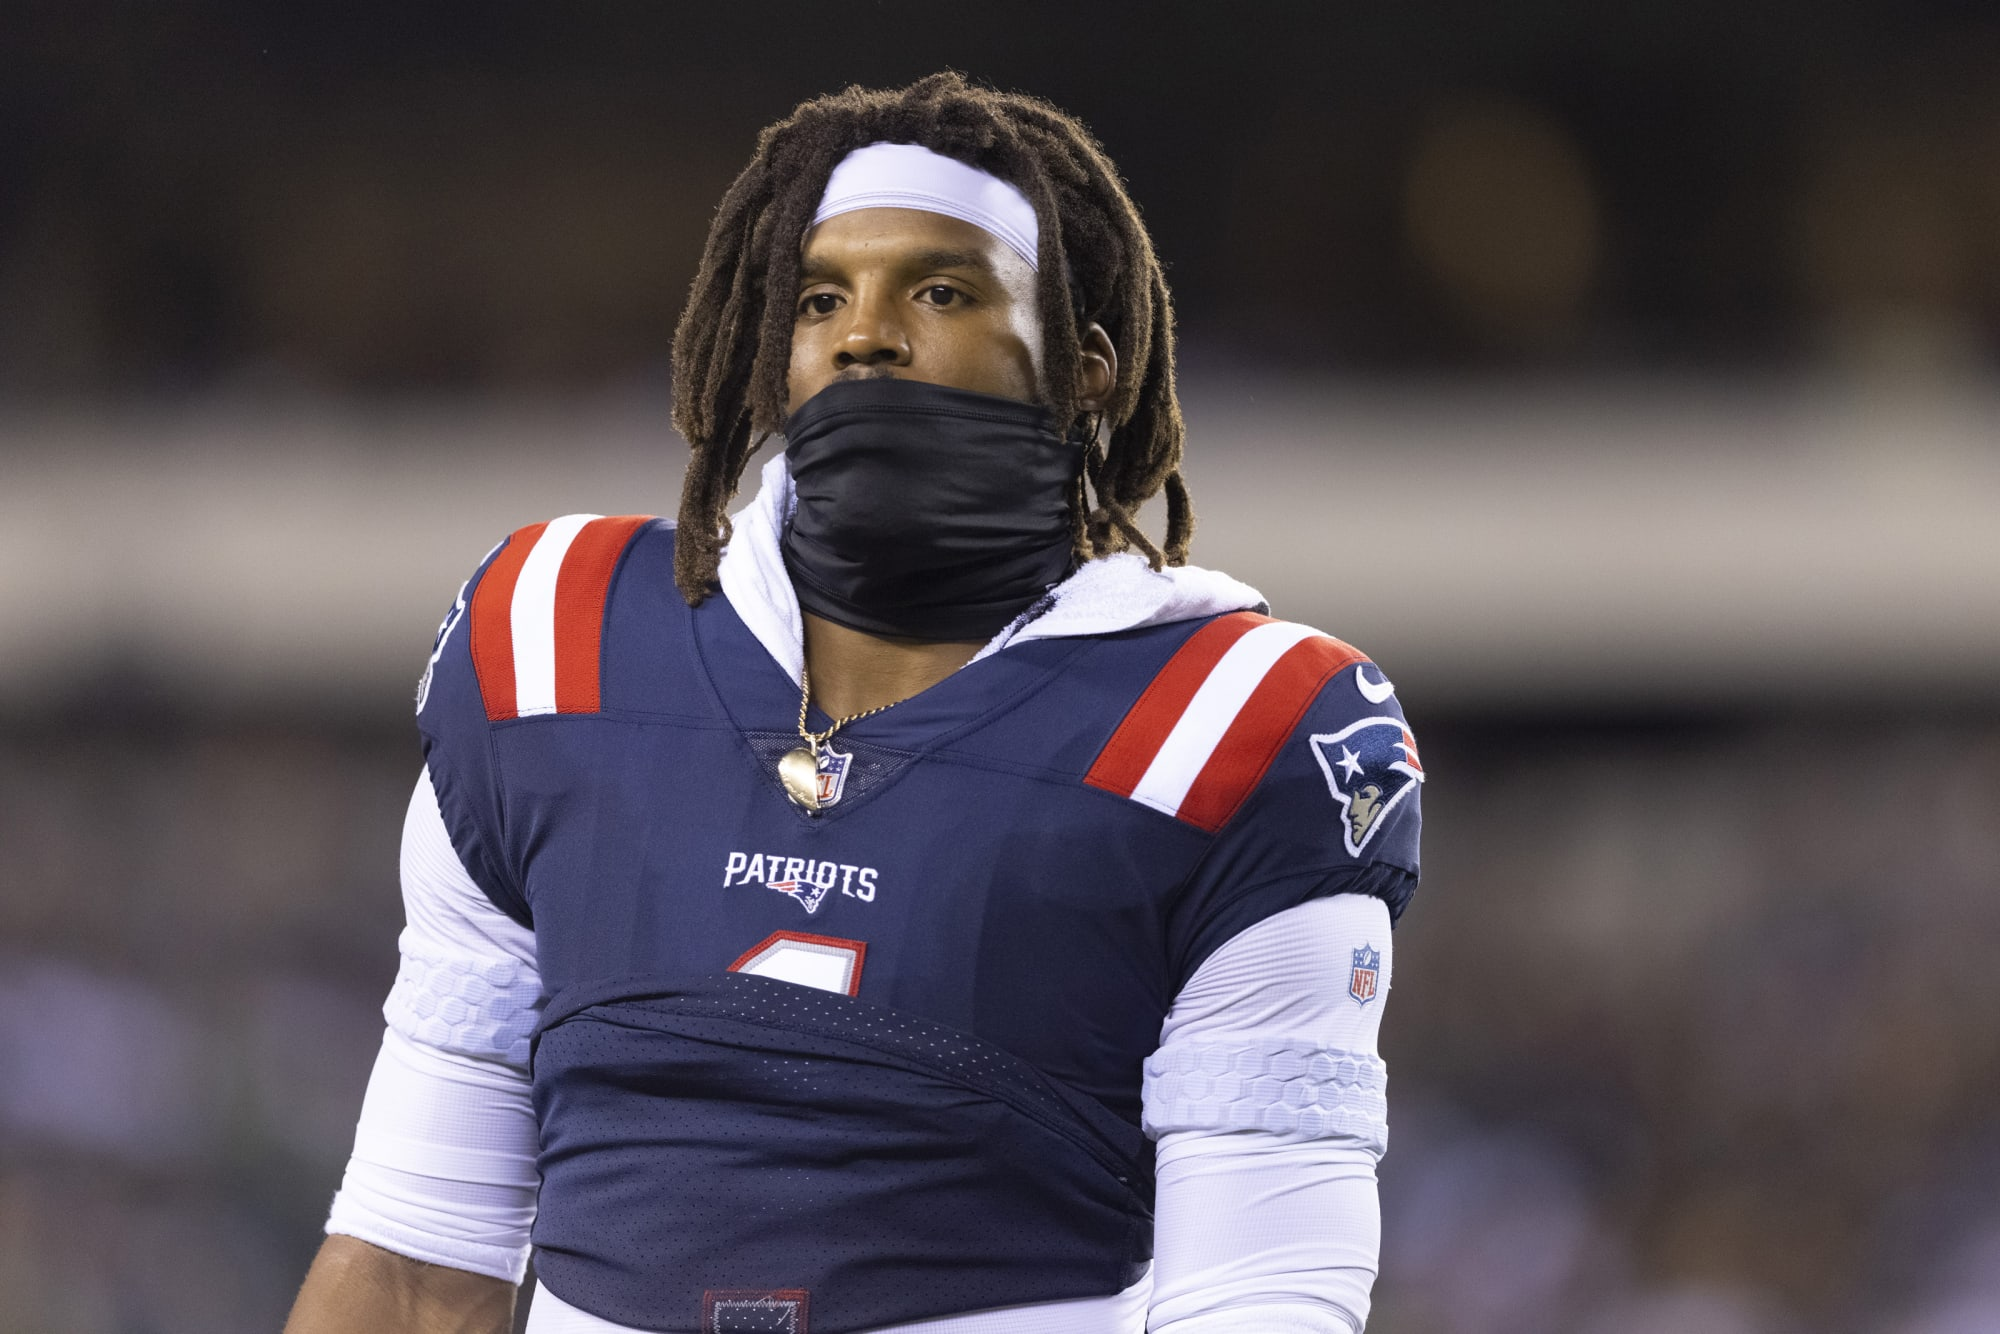 Patriots: Cam Newton's absence makes no difference in QB battle - Chowder and Champions